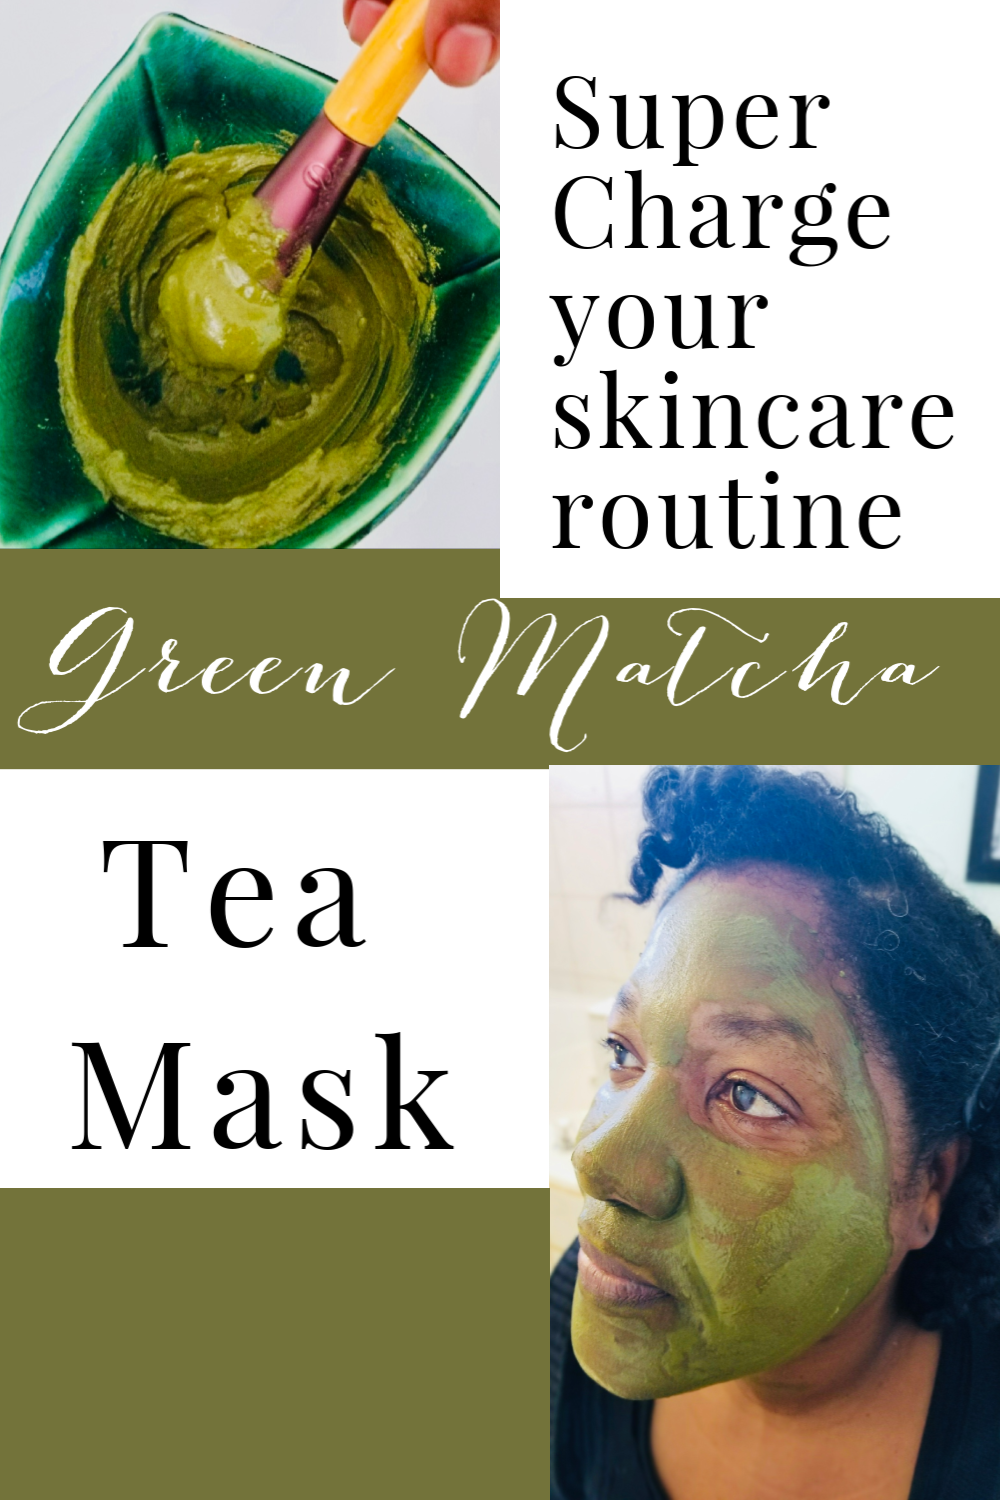 The Super Antioxidant Tea for your Skin, Green Matcha!